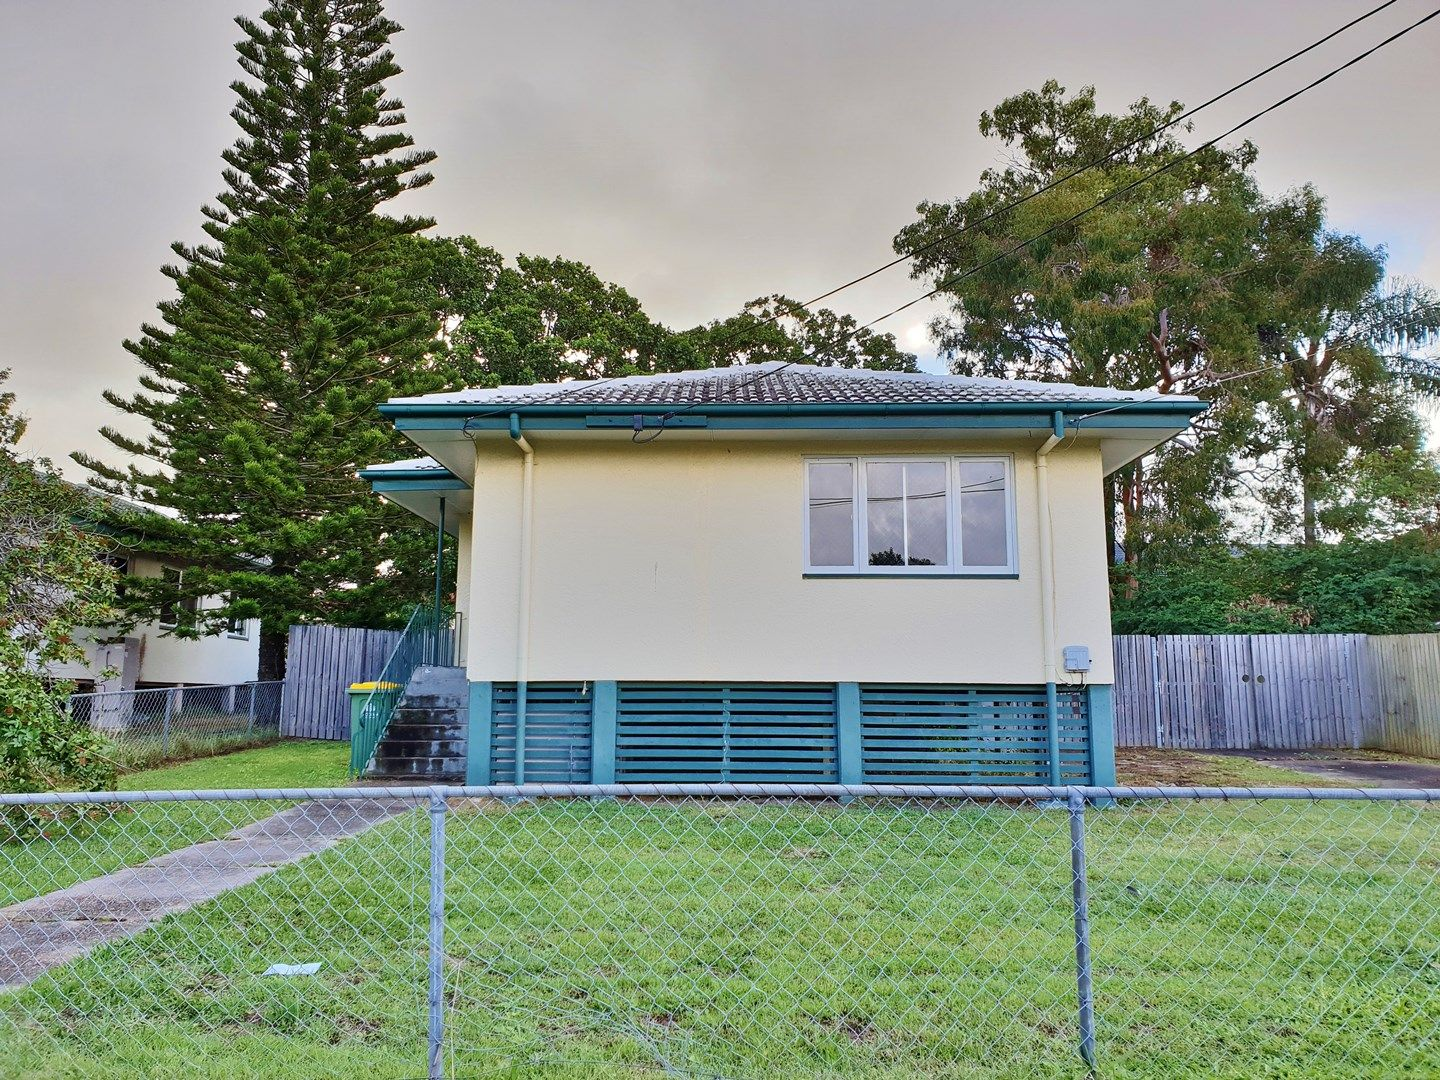 16 CLEOPATRA STREET, Kingston QLD 4114, Image 0